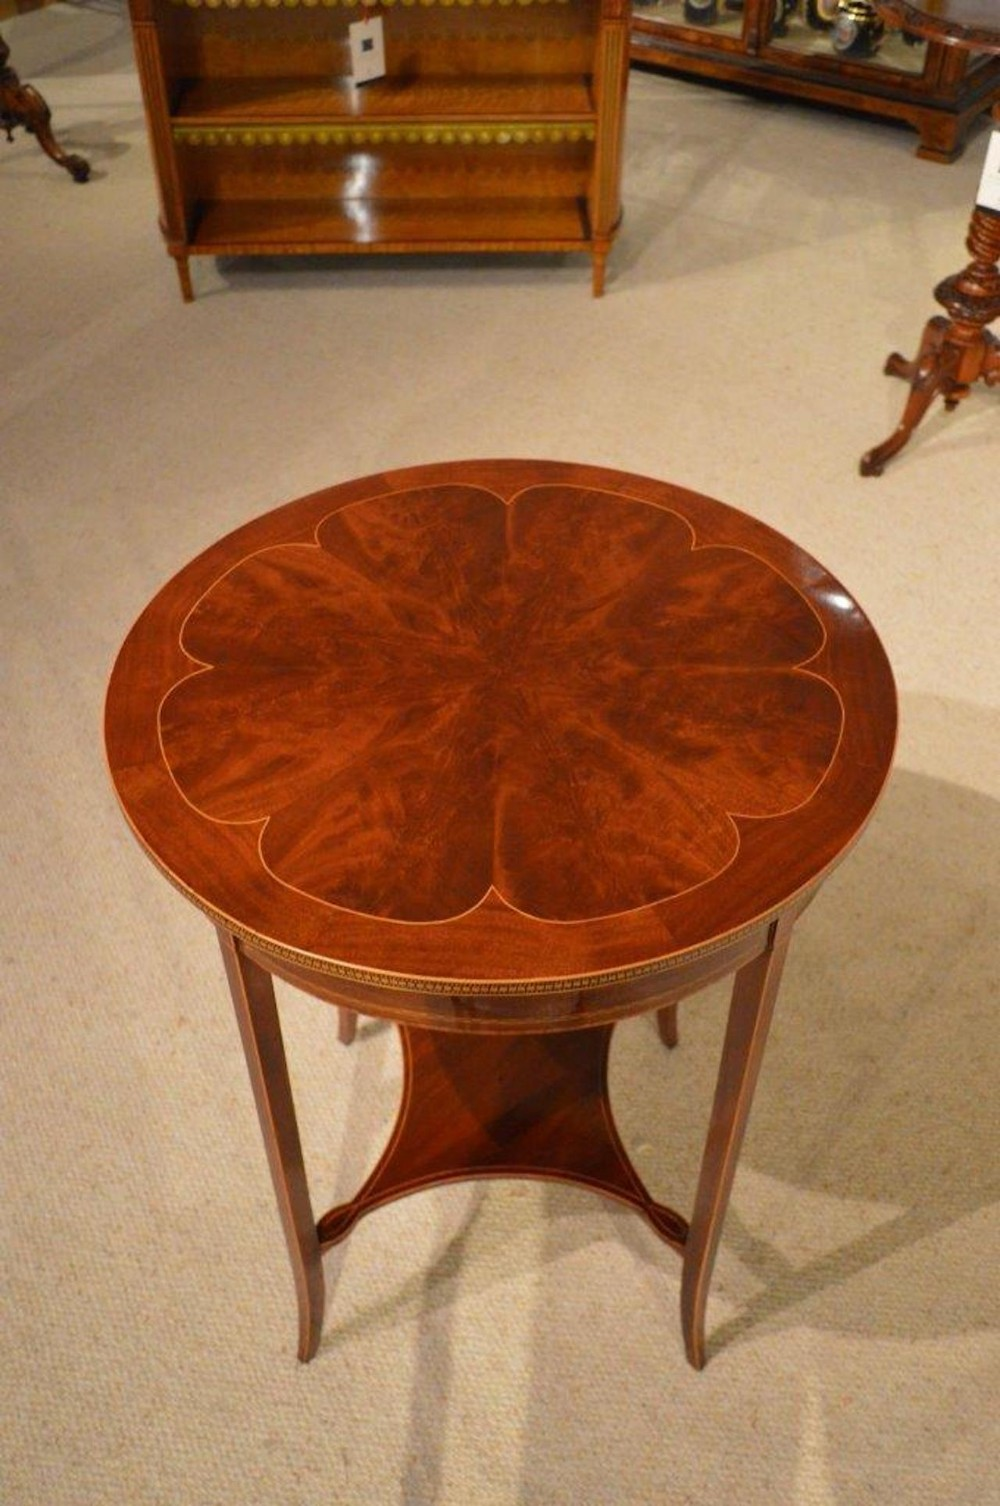 a fine quality flamed mahogany edwardian period circular occasional table